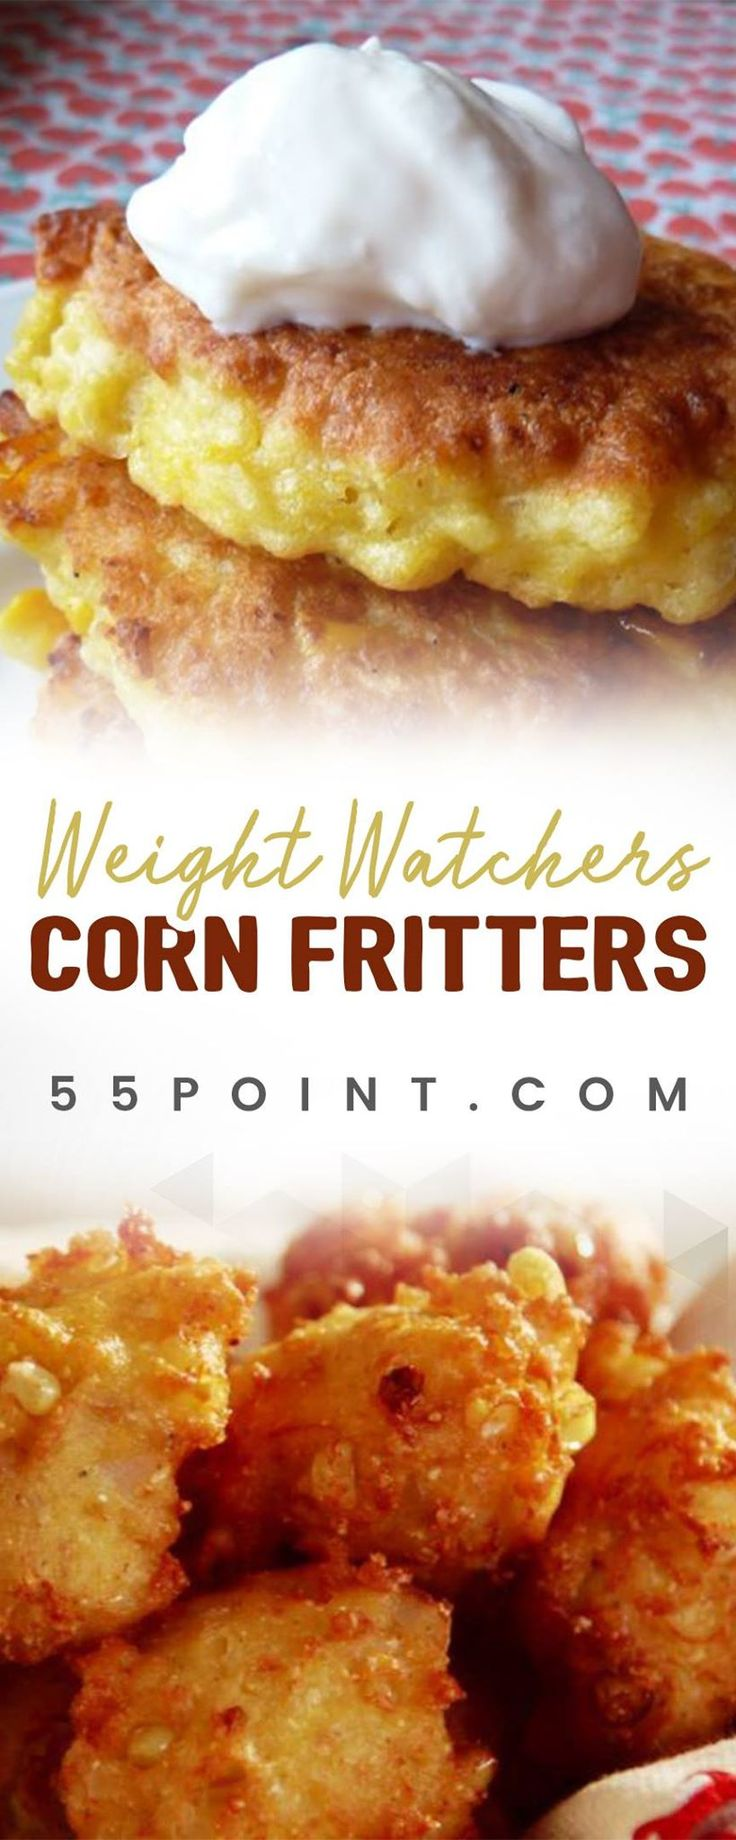 WEIGHT WATCHERS CORN FRITTERS